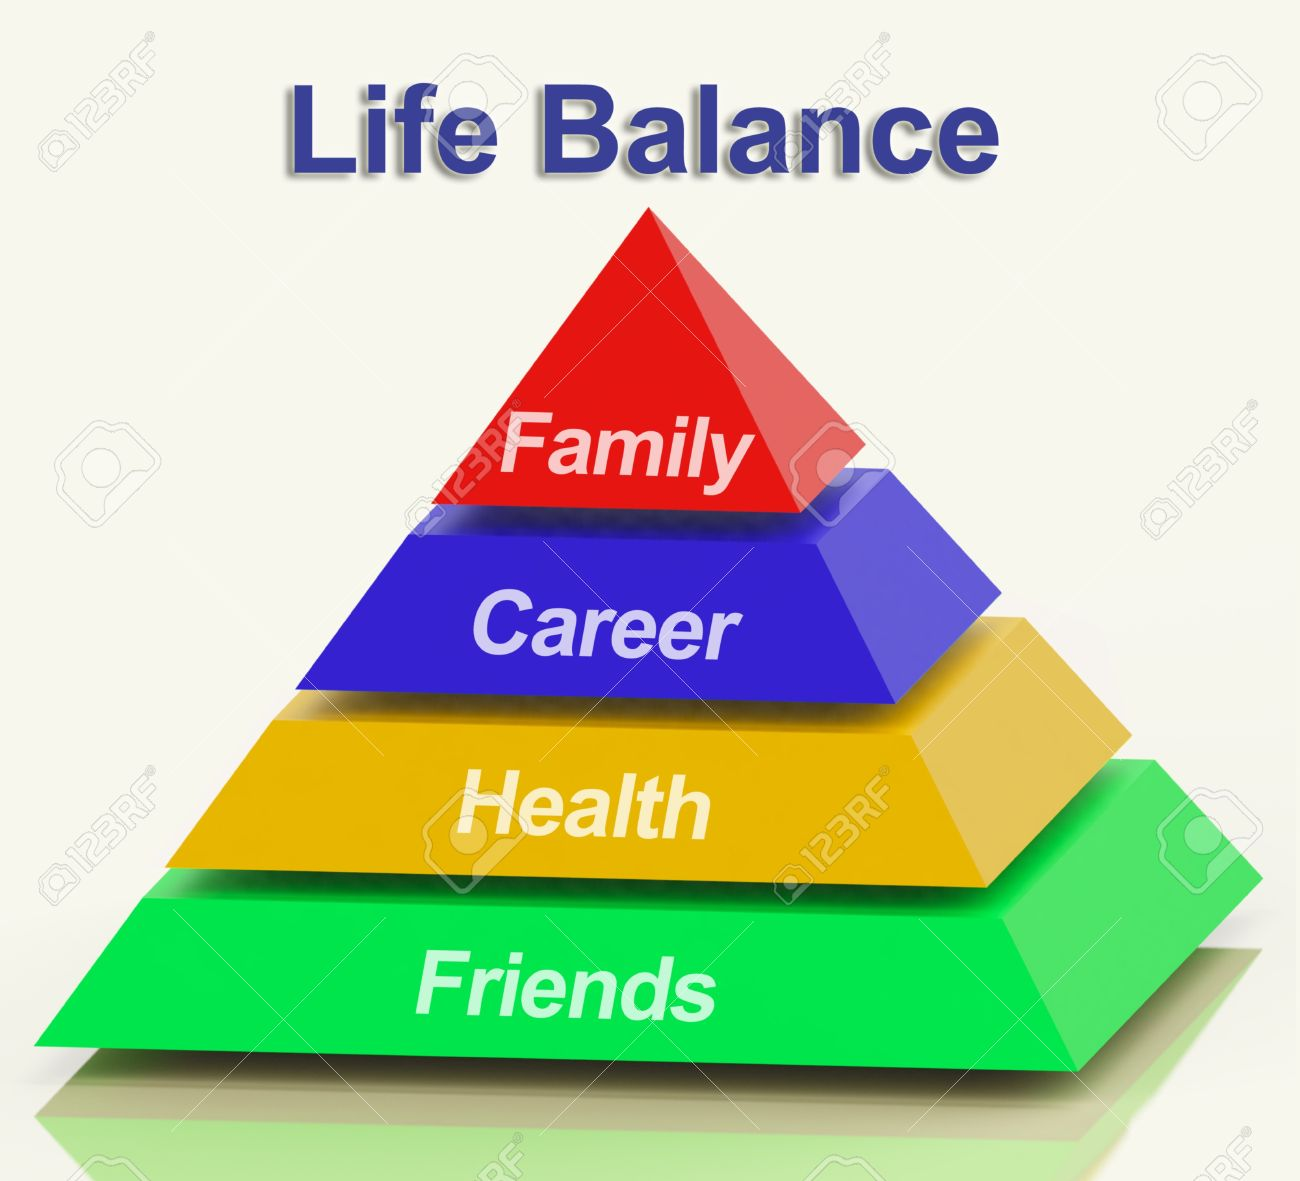 life aspiration stock photos pictures royalty life life aspiration life balance pyramid showing family career health and friends